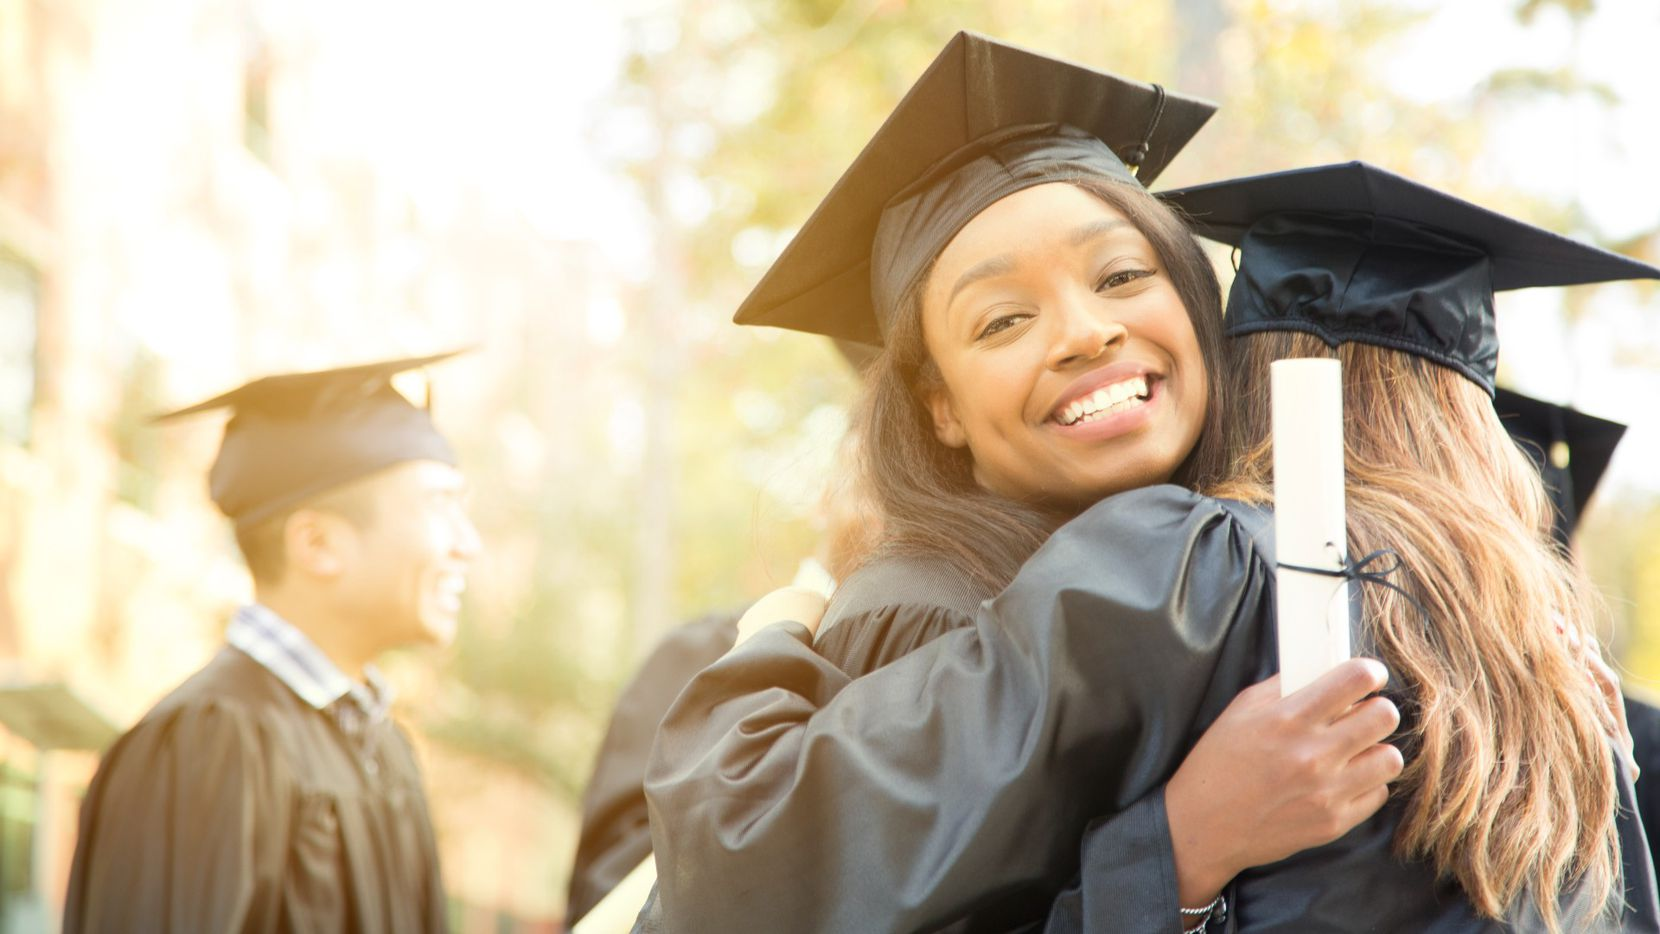 While colleges and universities continue to adapt to the changing circumstances created by the pandemic, one thing remains certain — there is still much to be valued in a college education.